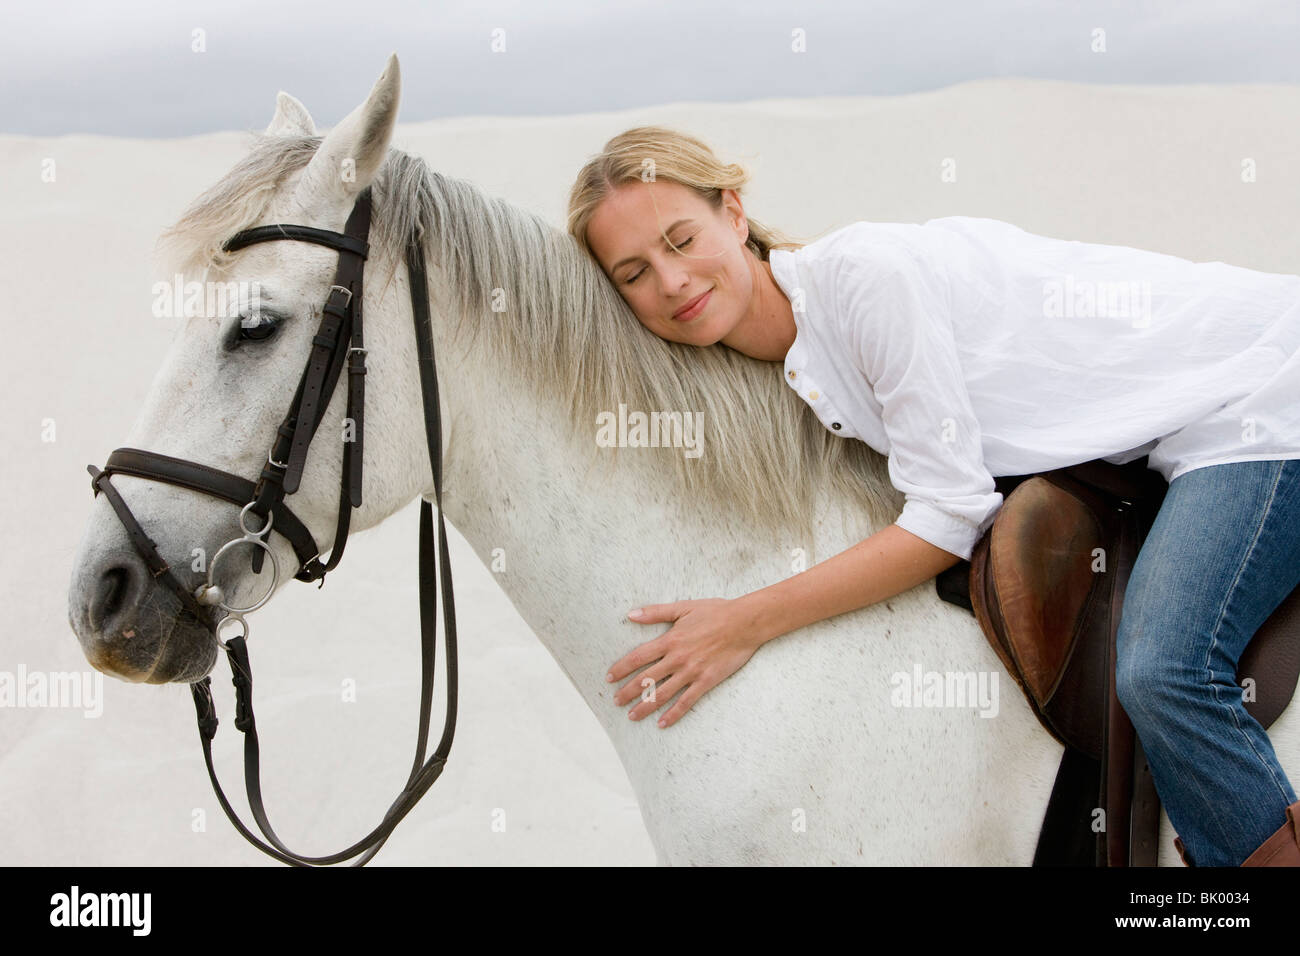 Horse with girl rider - Stock Image